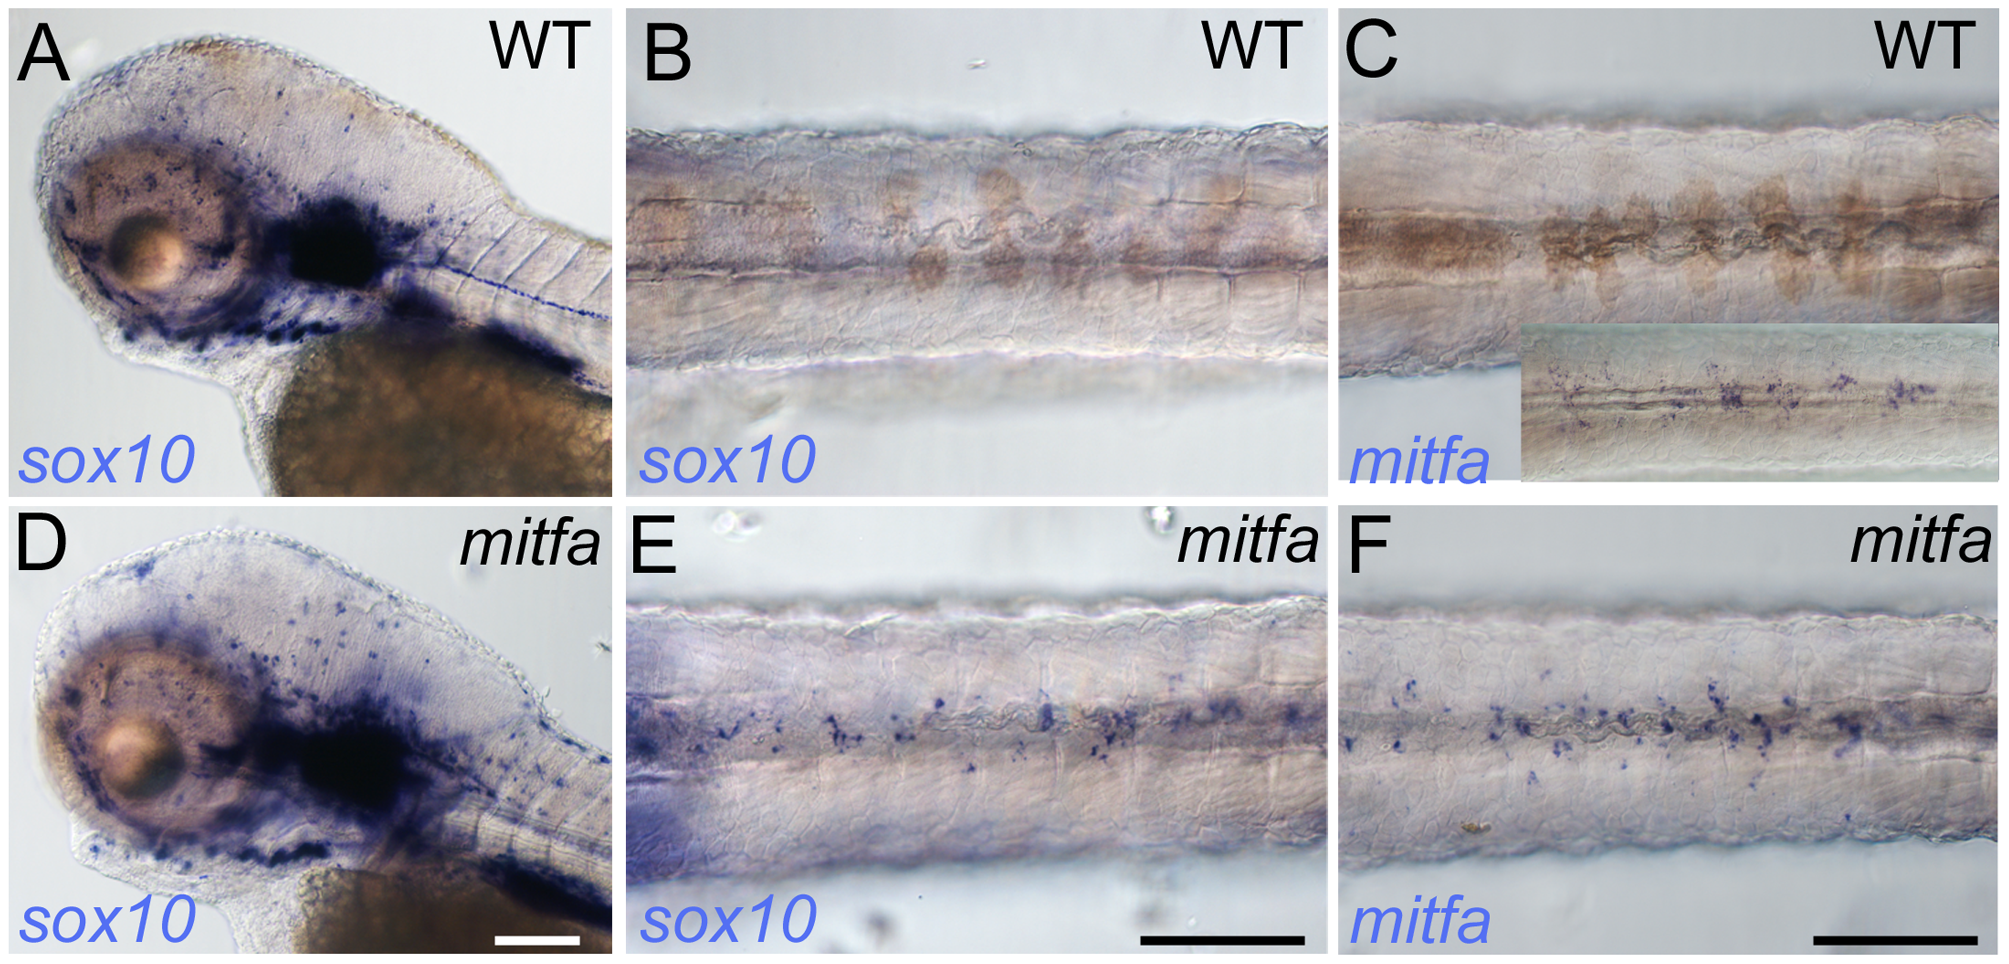 Mitfa-dependent repression of <i>sox10</i> expression in neural crest.